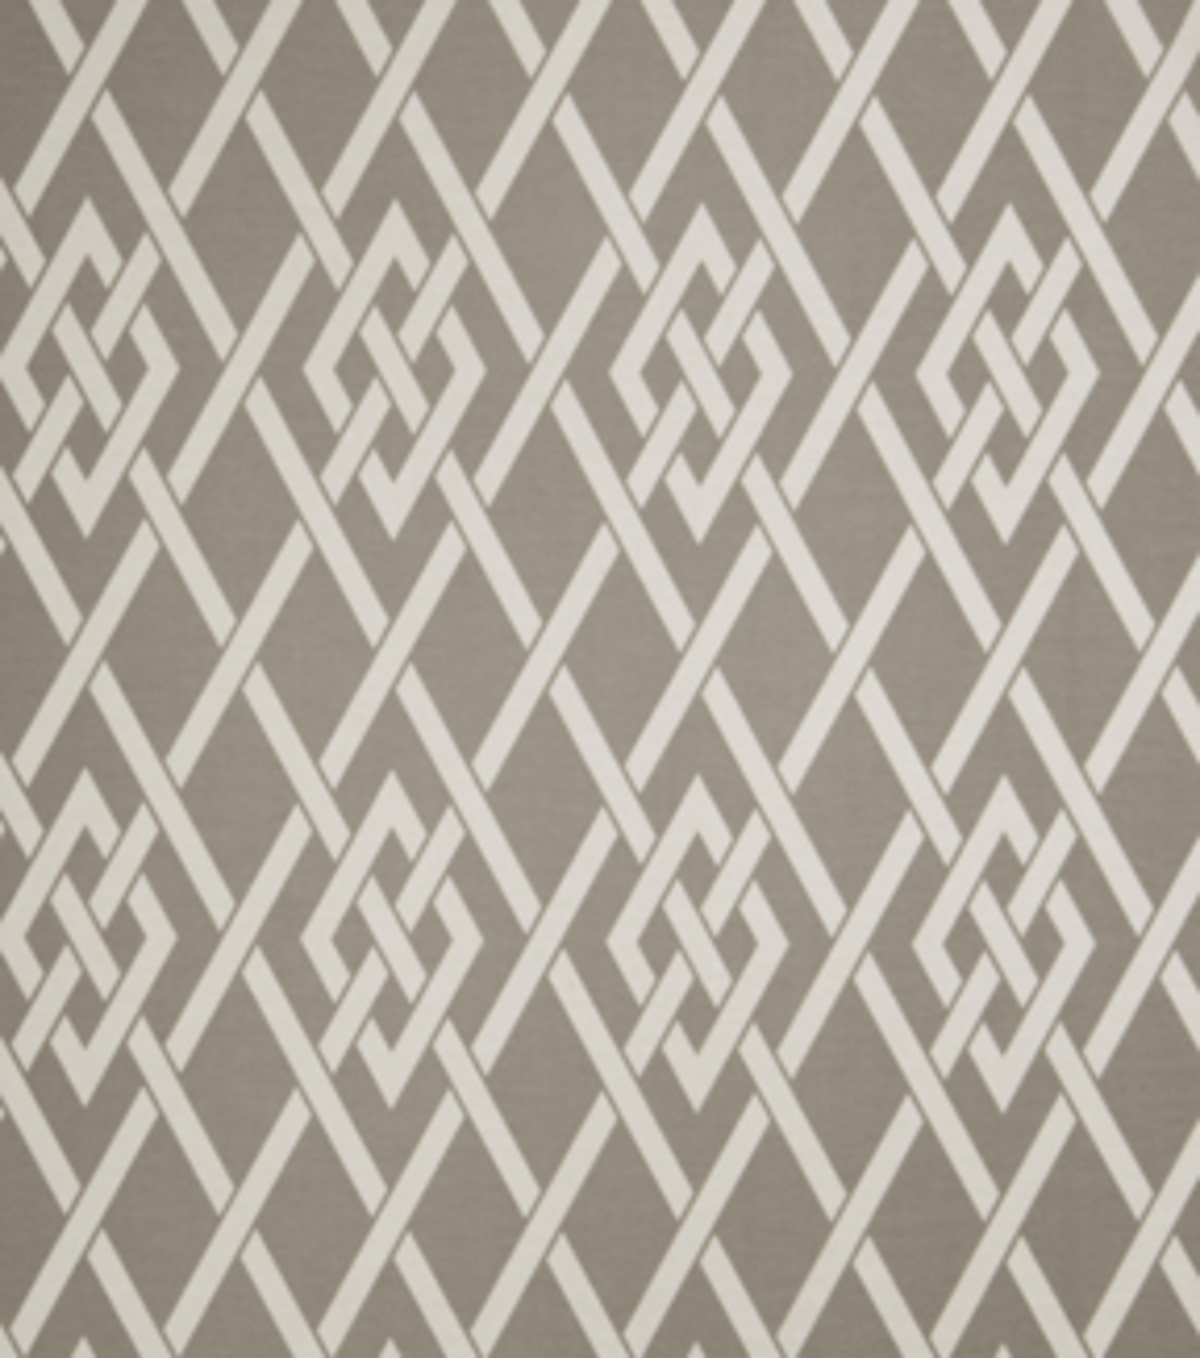 Eaton Square Multi-Purpose Decor Fabric 54\u0022-Sherry / Pewter